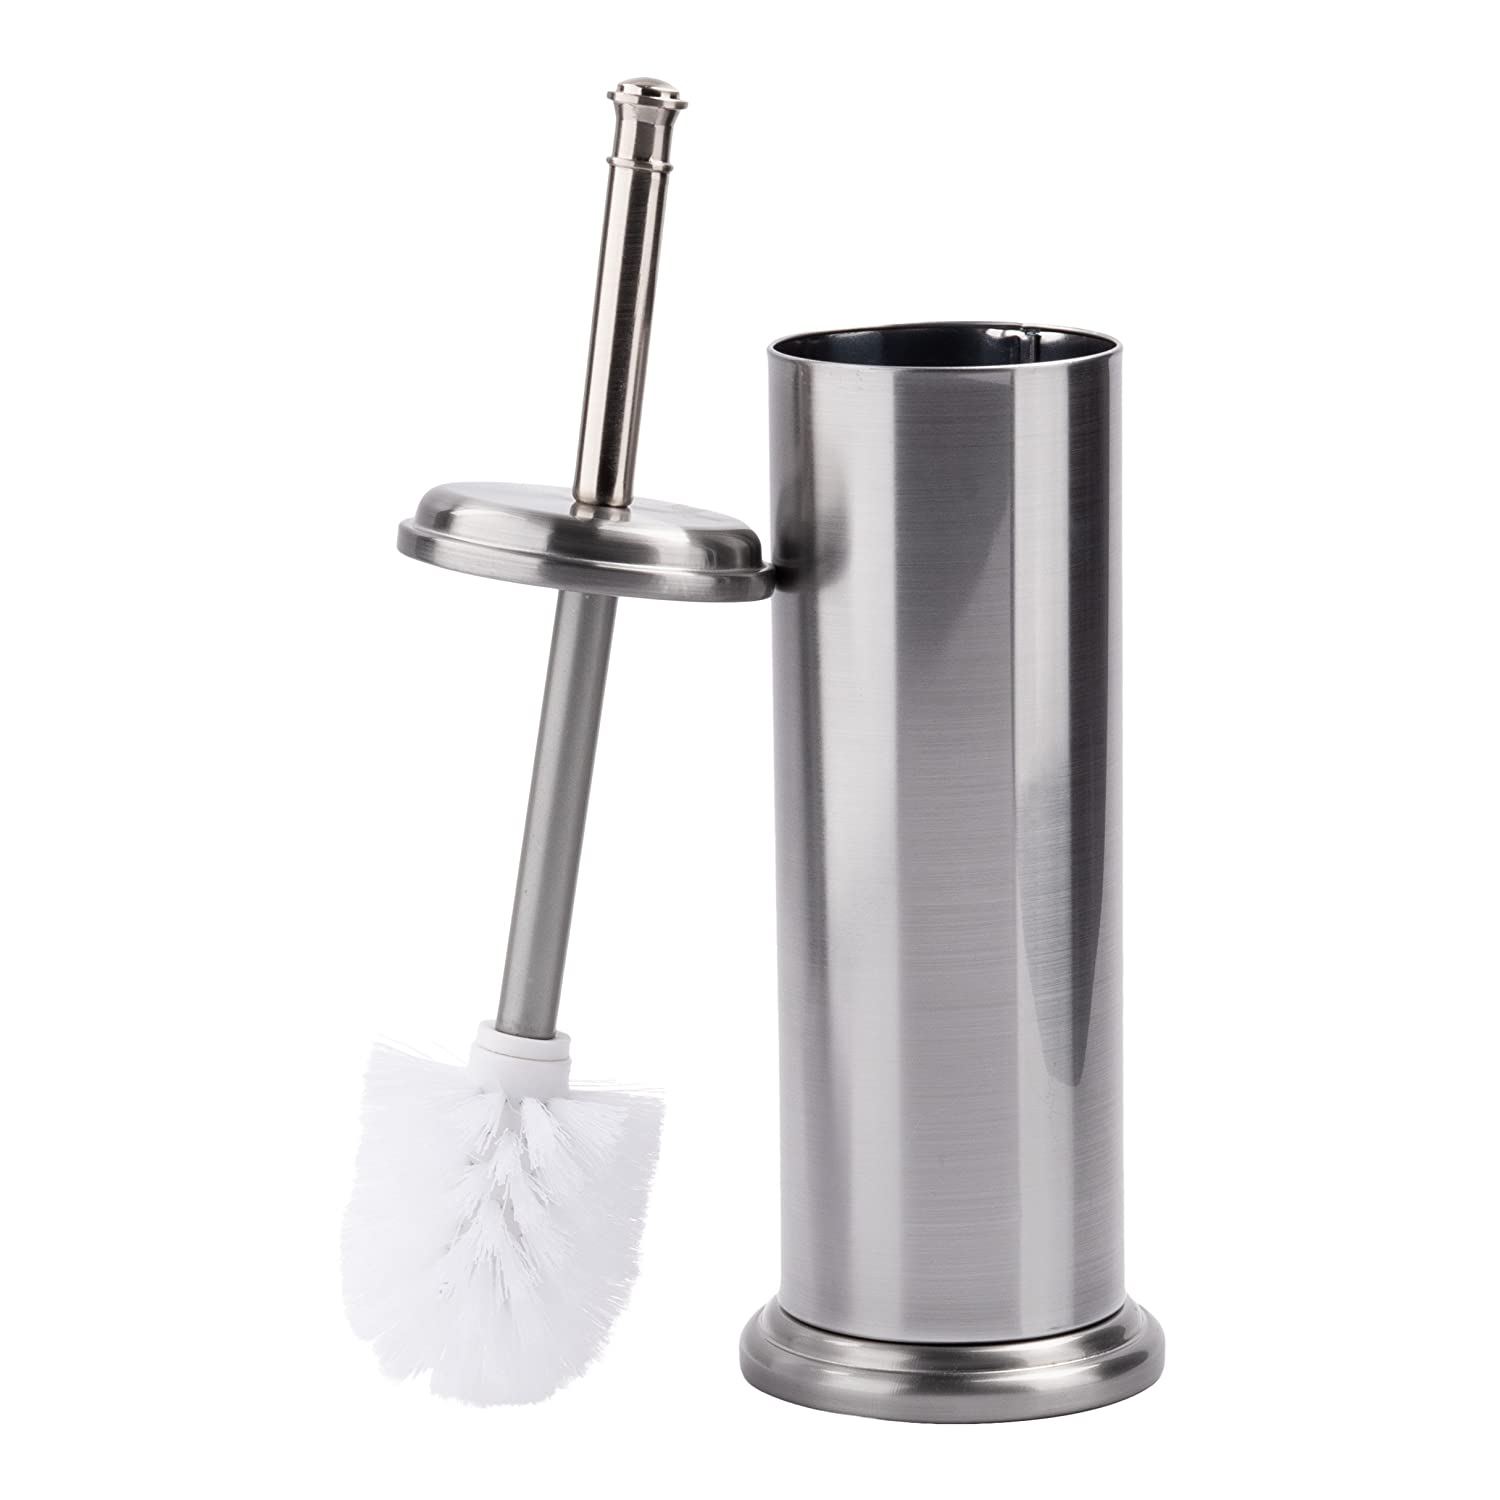 LDR 164 M6459BN Toilet Brush with Canister Brushed Nickel Finish LDR Industries SYNCHKG112282